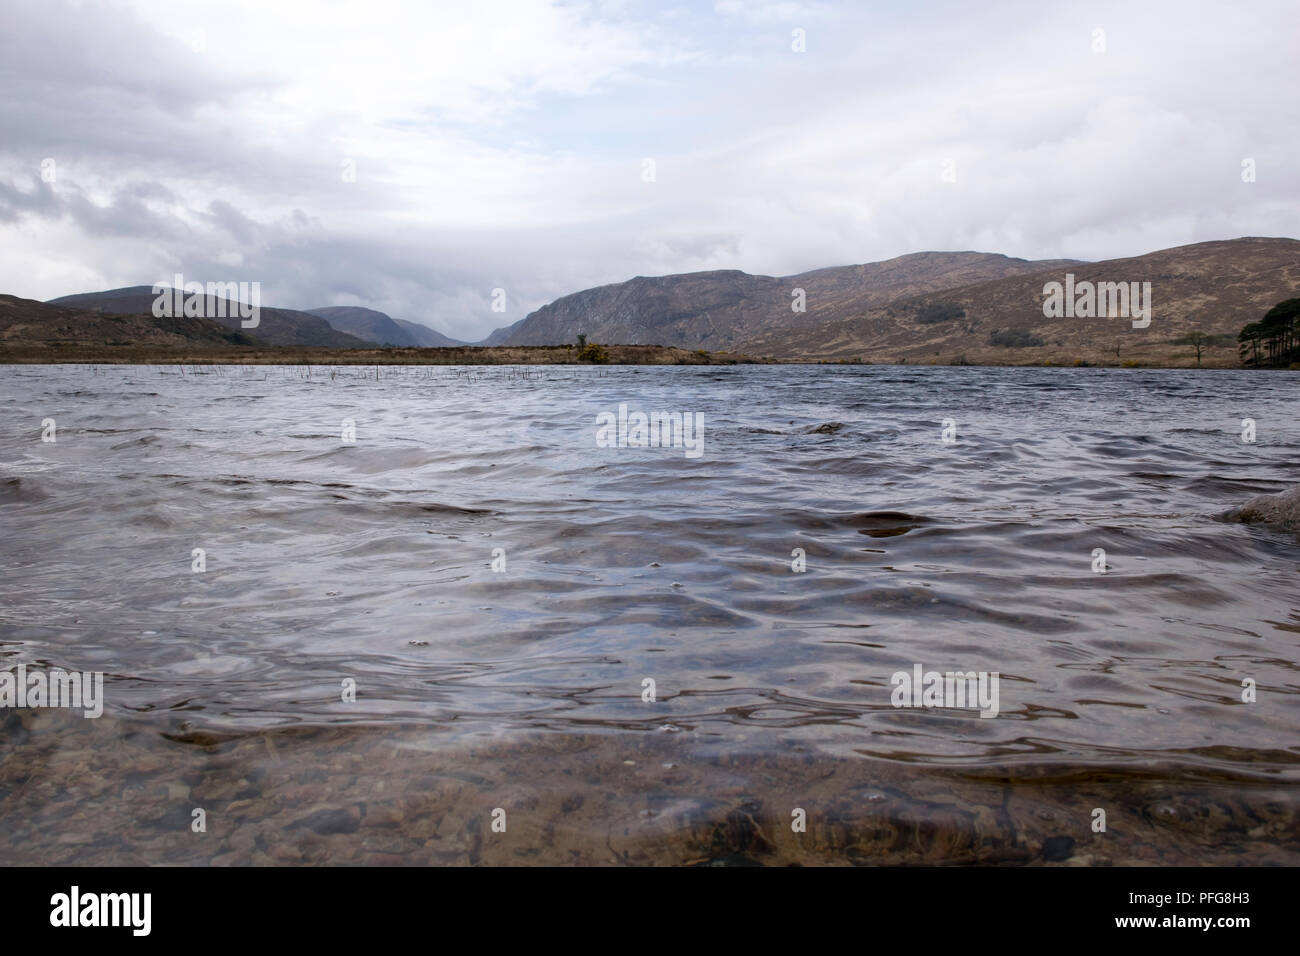 a shot of a lake in an irish landscape in county Donegal, ireland - Stock Image